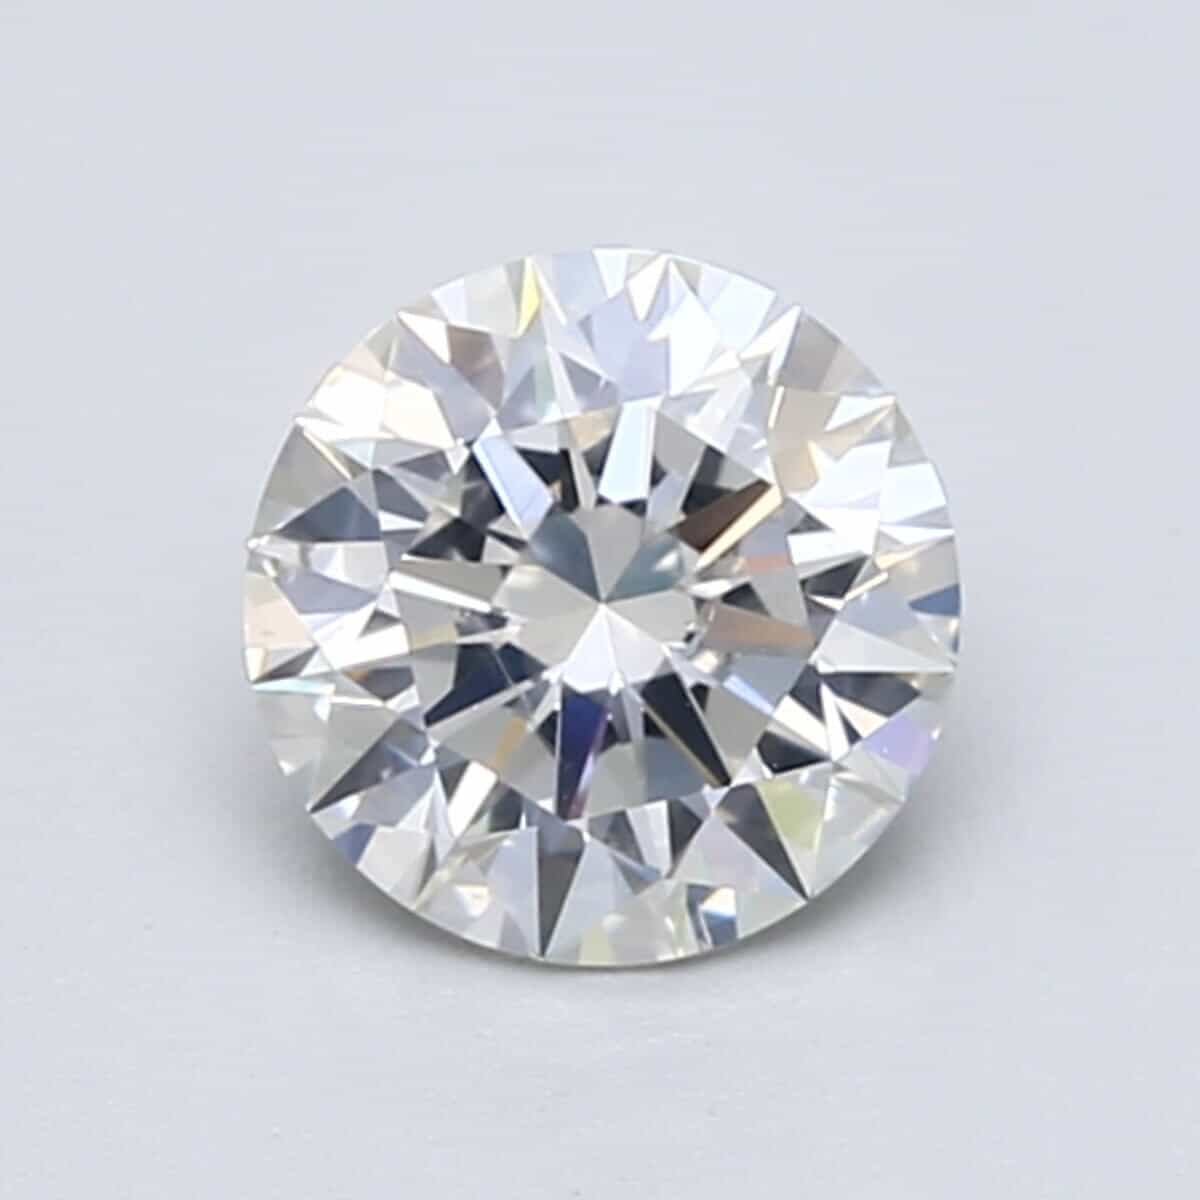 1.00ct G Color SI2 Clarity Diamond from Blue Nile a Better Value